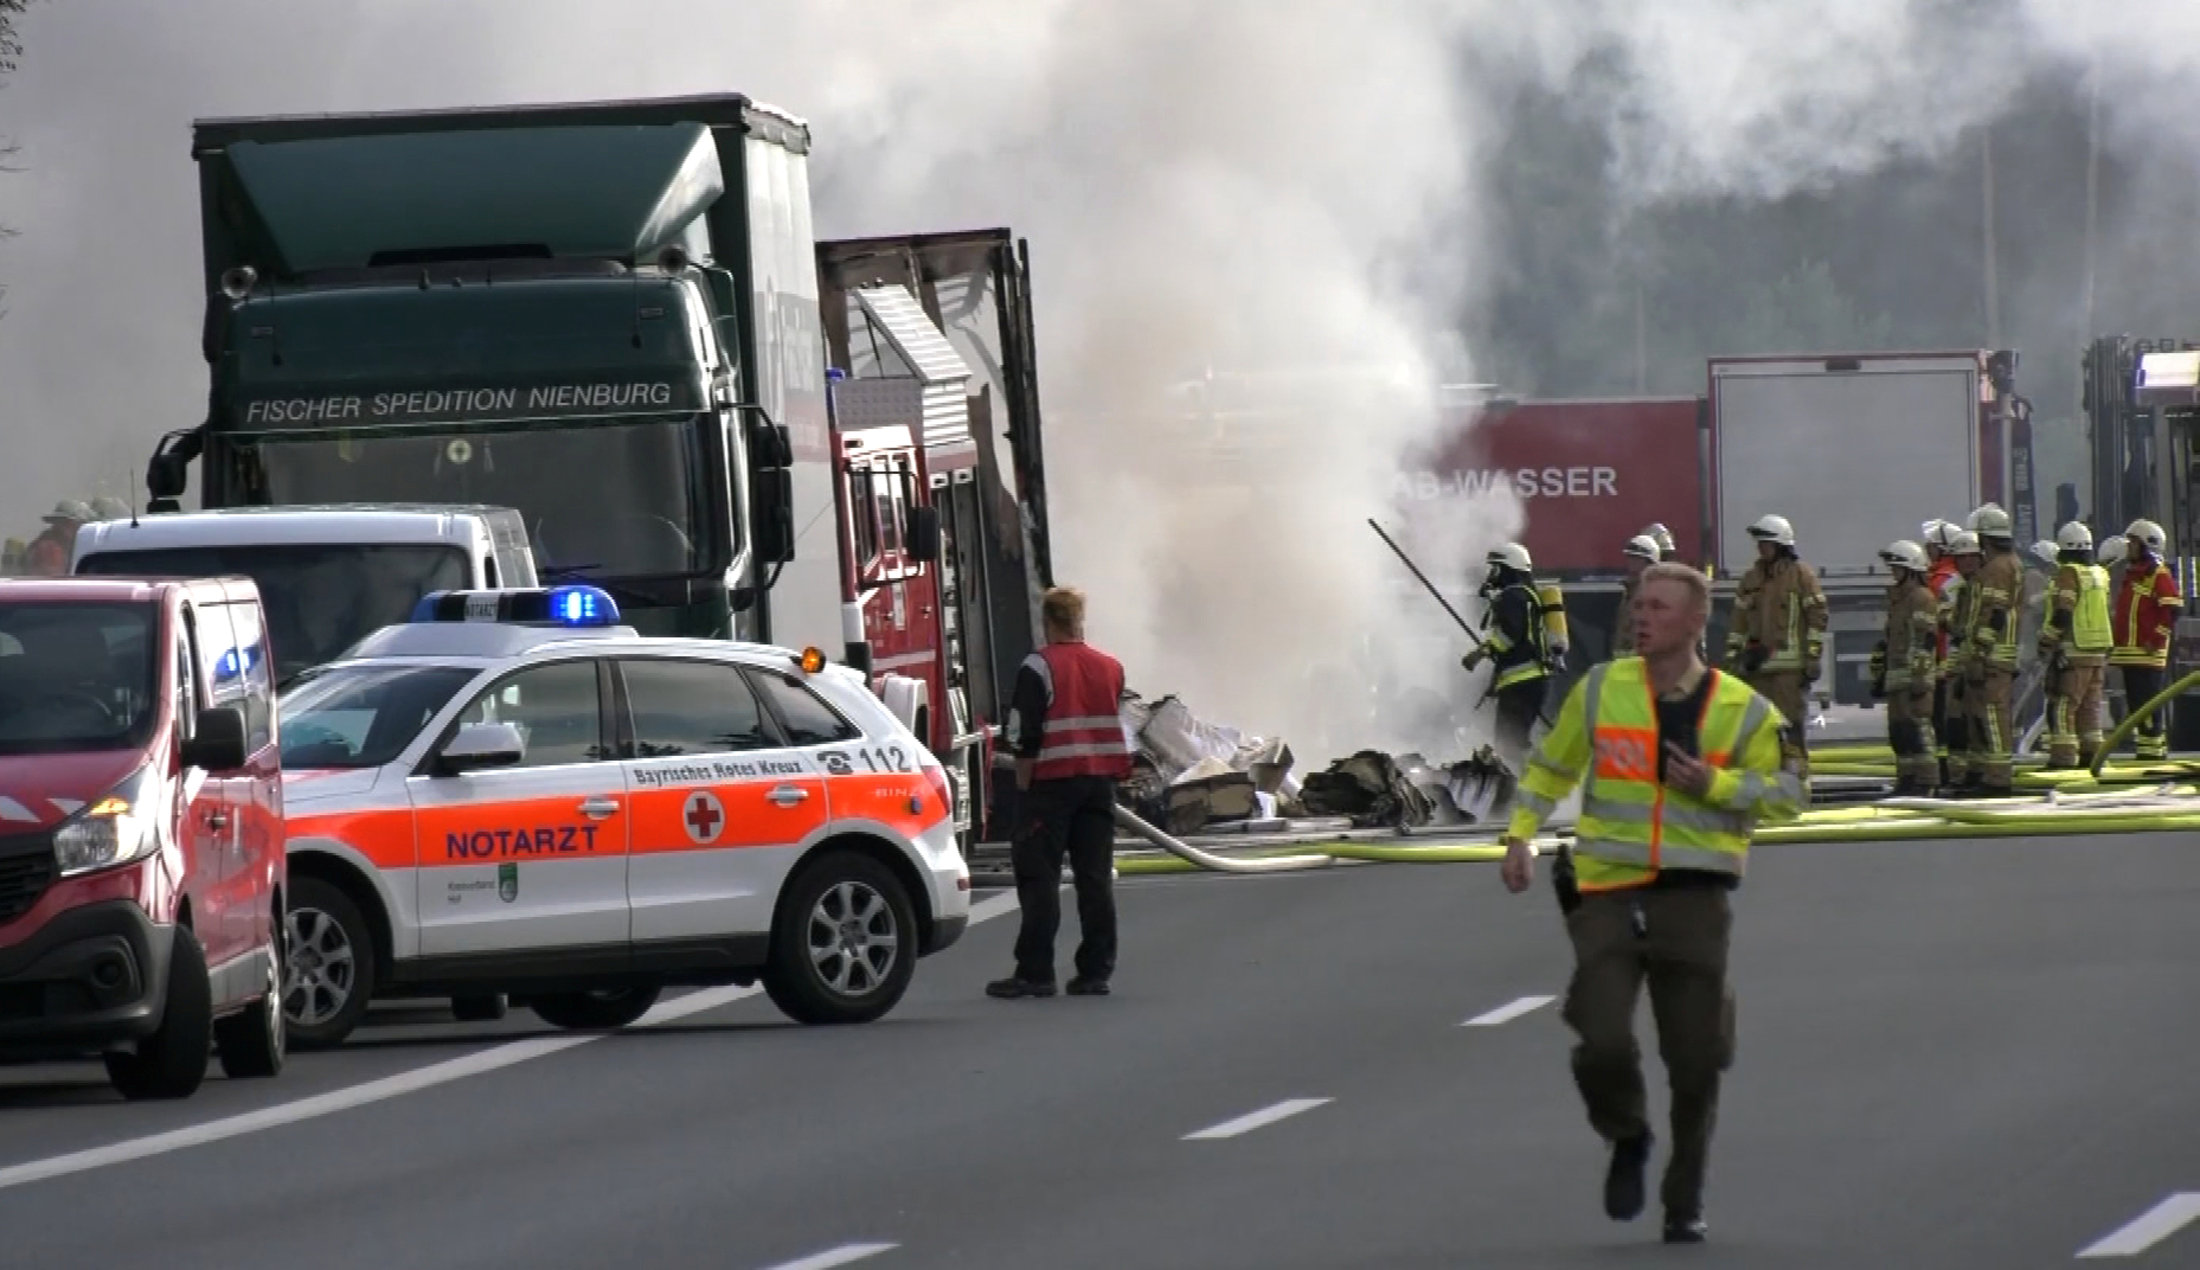 Firefighters are seen at the site where a coach burst into flames after colliding with a lorry on a motorway near Muenchberg, Germany in this still image taken from video on July 3, 2017. REUTERS/News 5.